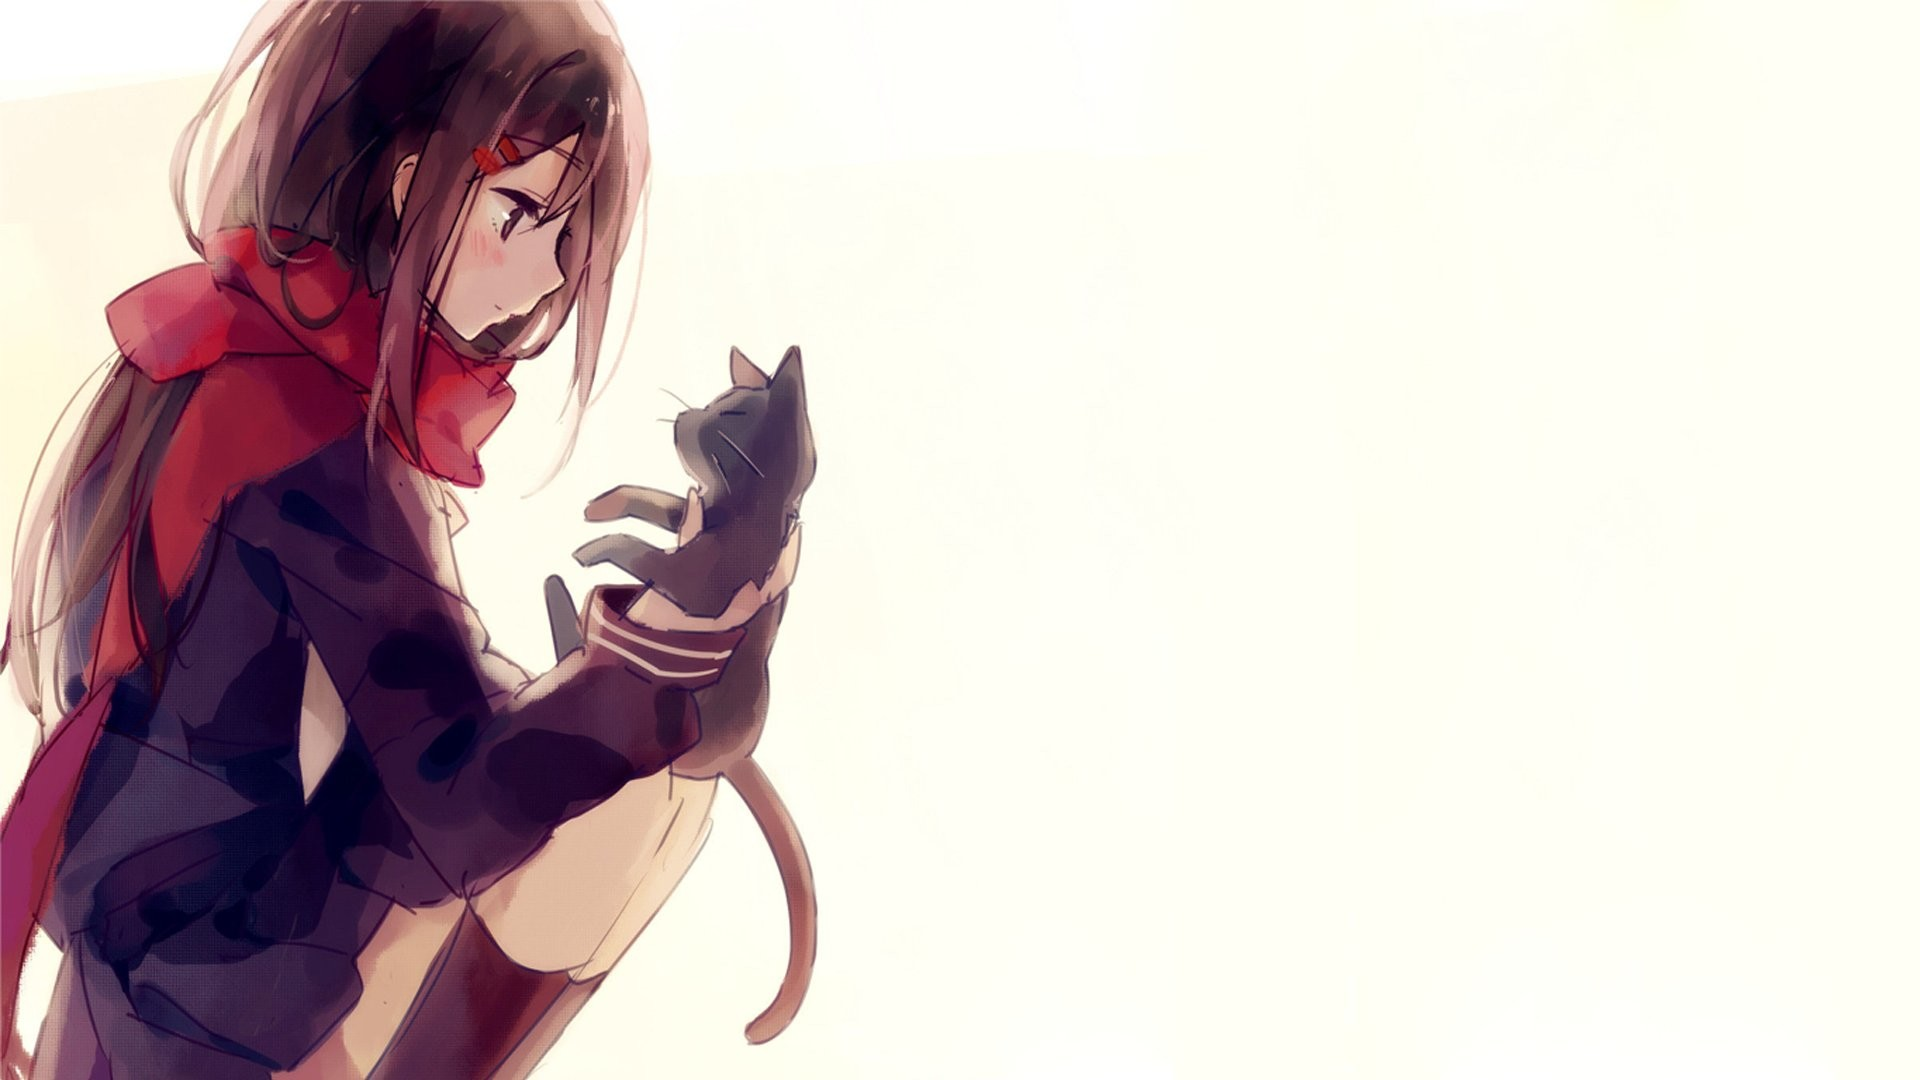 Cute anime background 66 images 1920x1080 kagerou project anime series girl cute cat wallpaper voltagebd Choice Image